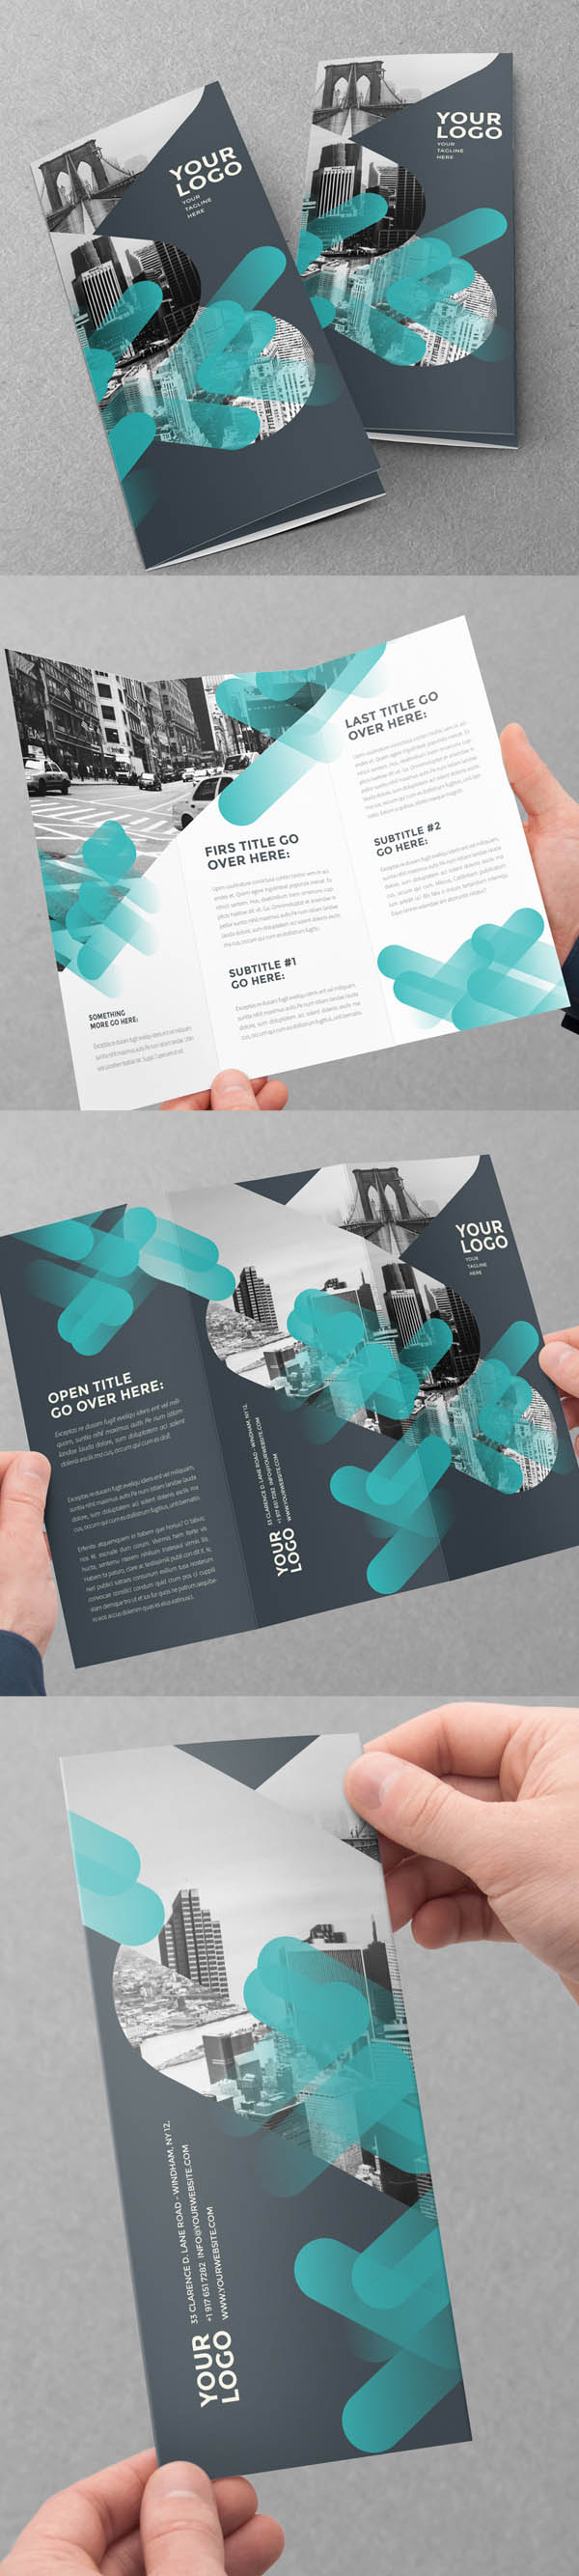 modern brochure design inspiration - 10 best corporate business brochure designs for